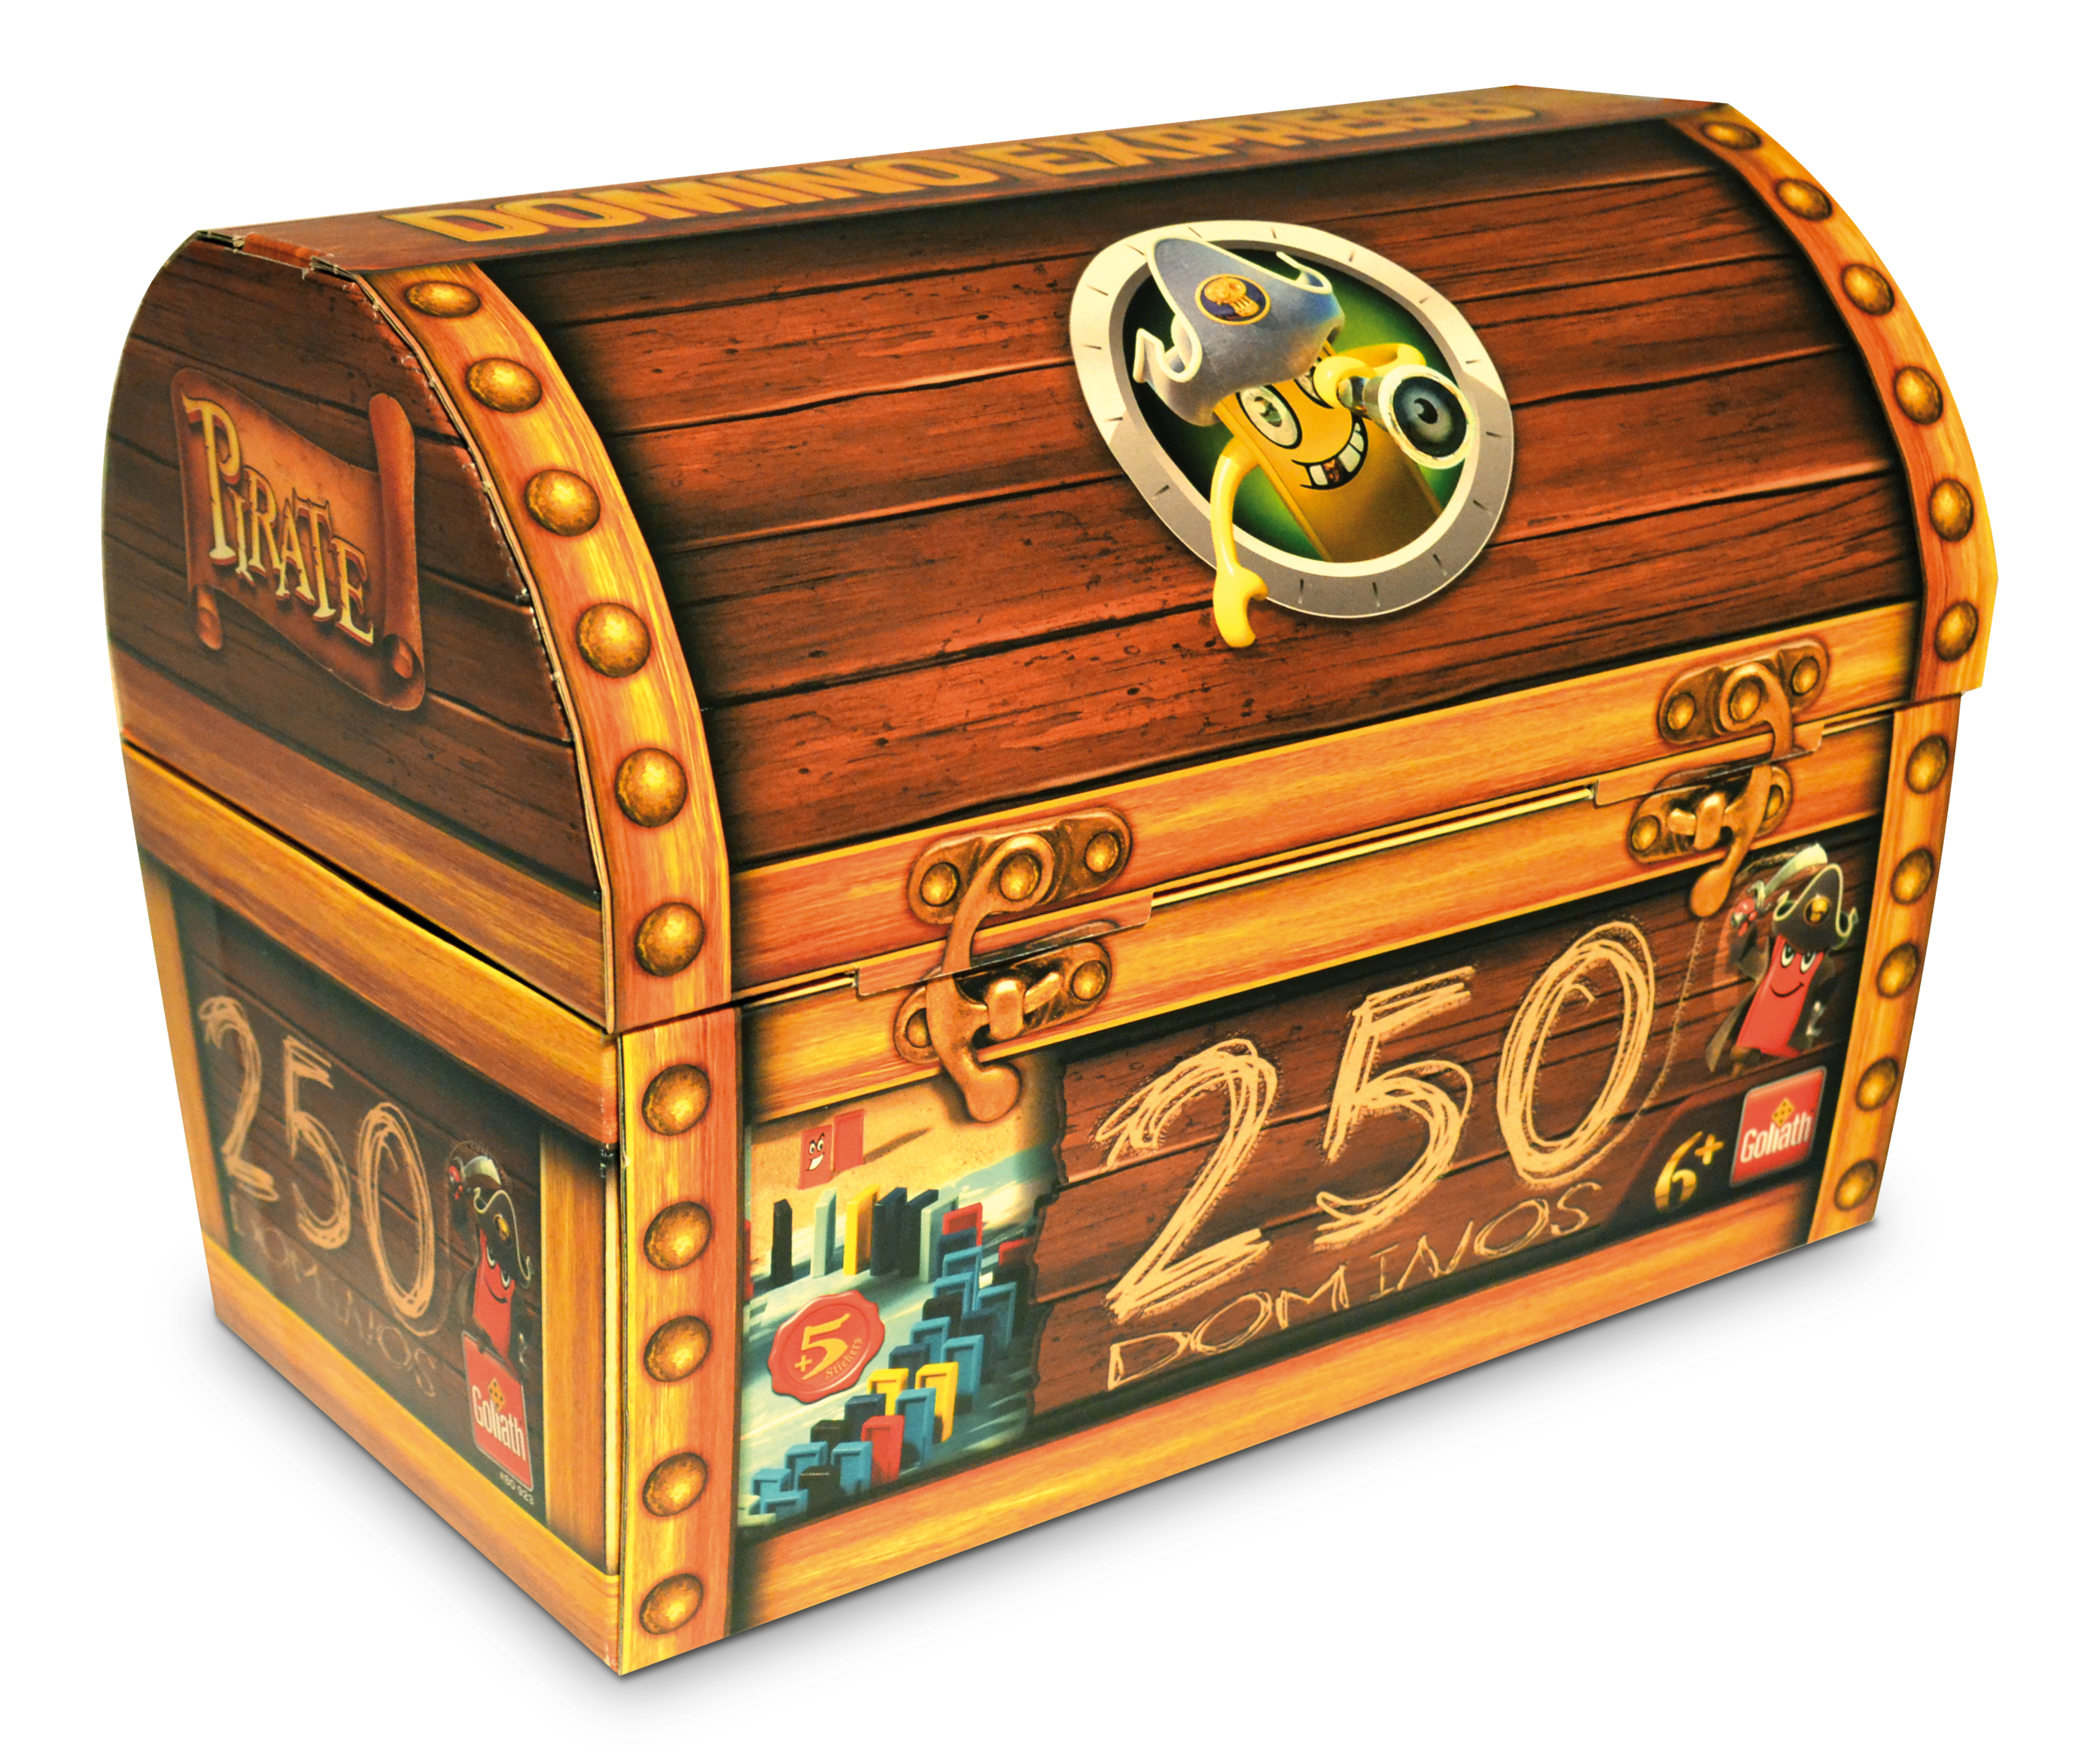 Jeux Domino Domino Express Pirate Refill Chest Goliath France Goliath